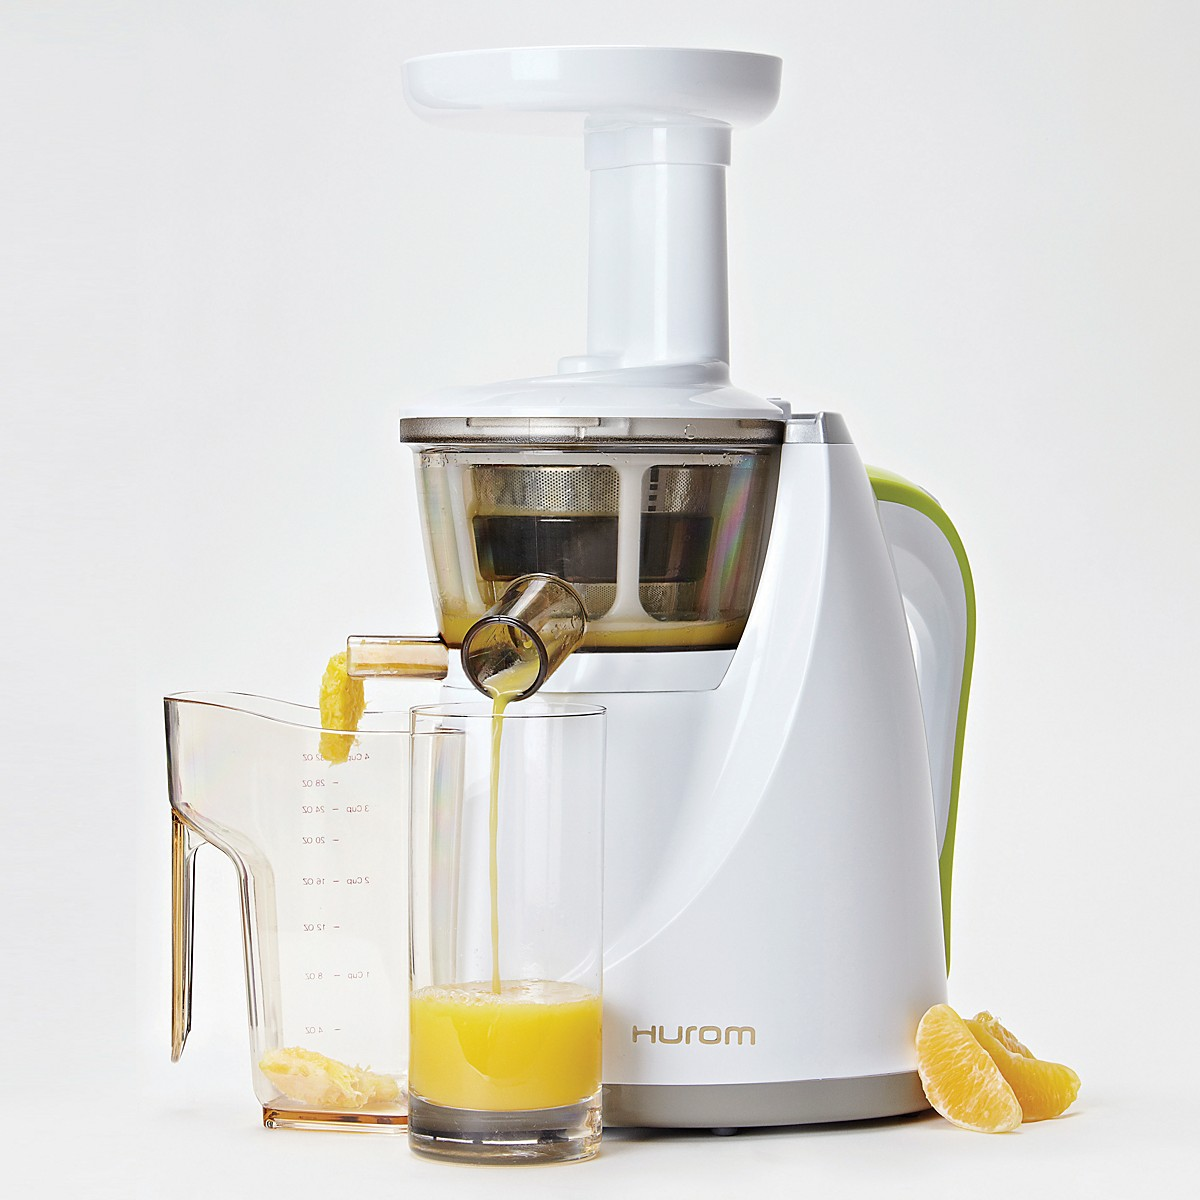 Slow Juicer Hurom Kopen : The Wish List 2014 Our favourite kitchen appliances for chefs and avid home cooks